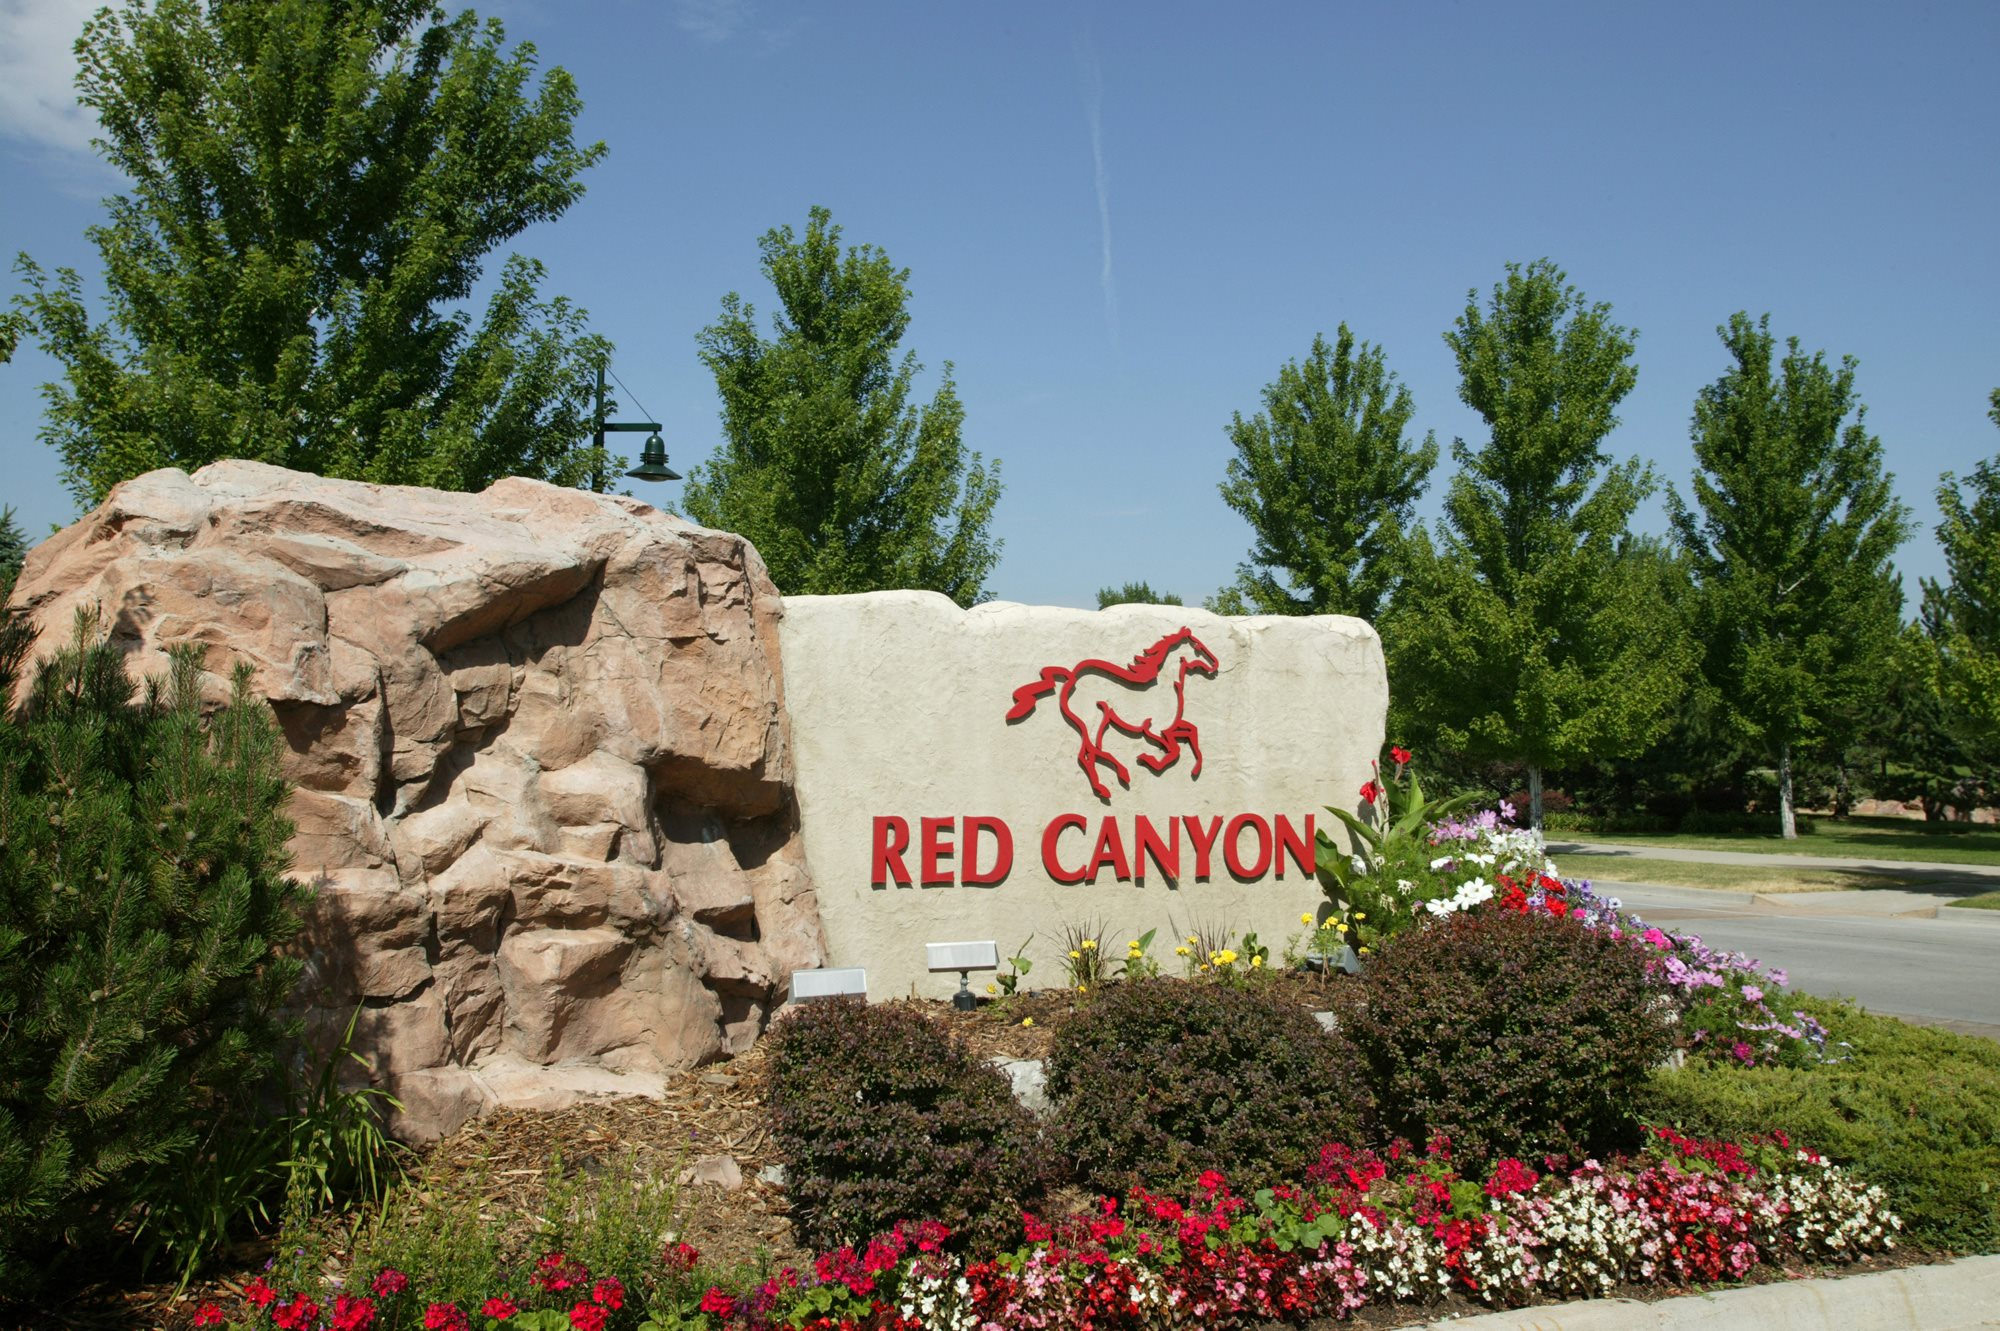 RedCanyon-Monument sign for property